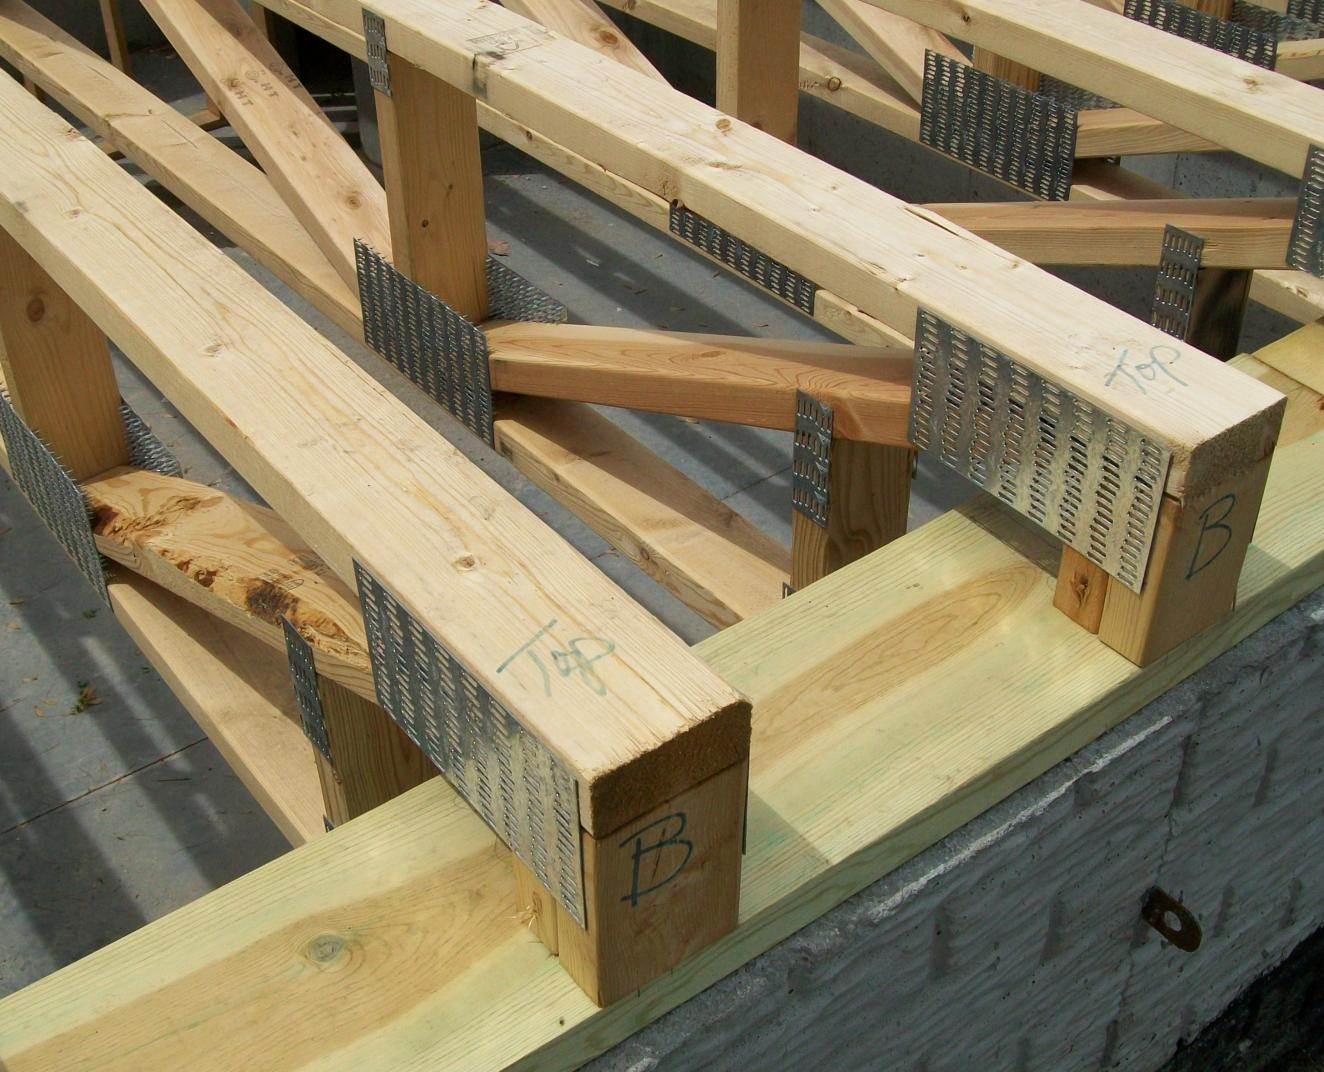 Name Four Advantages Of Engineered Wood Floor Trusses